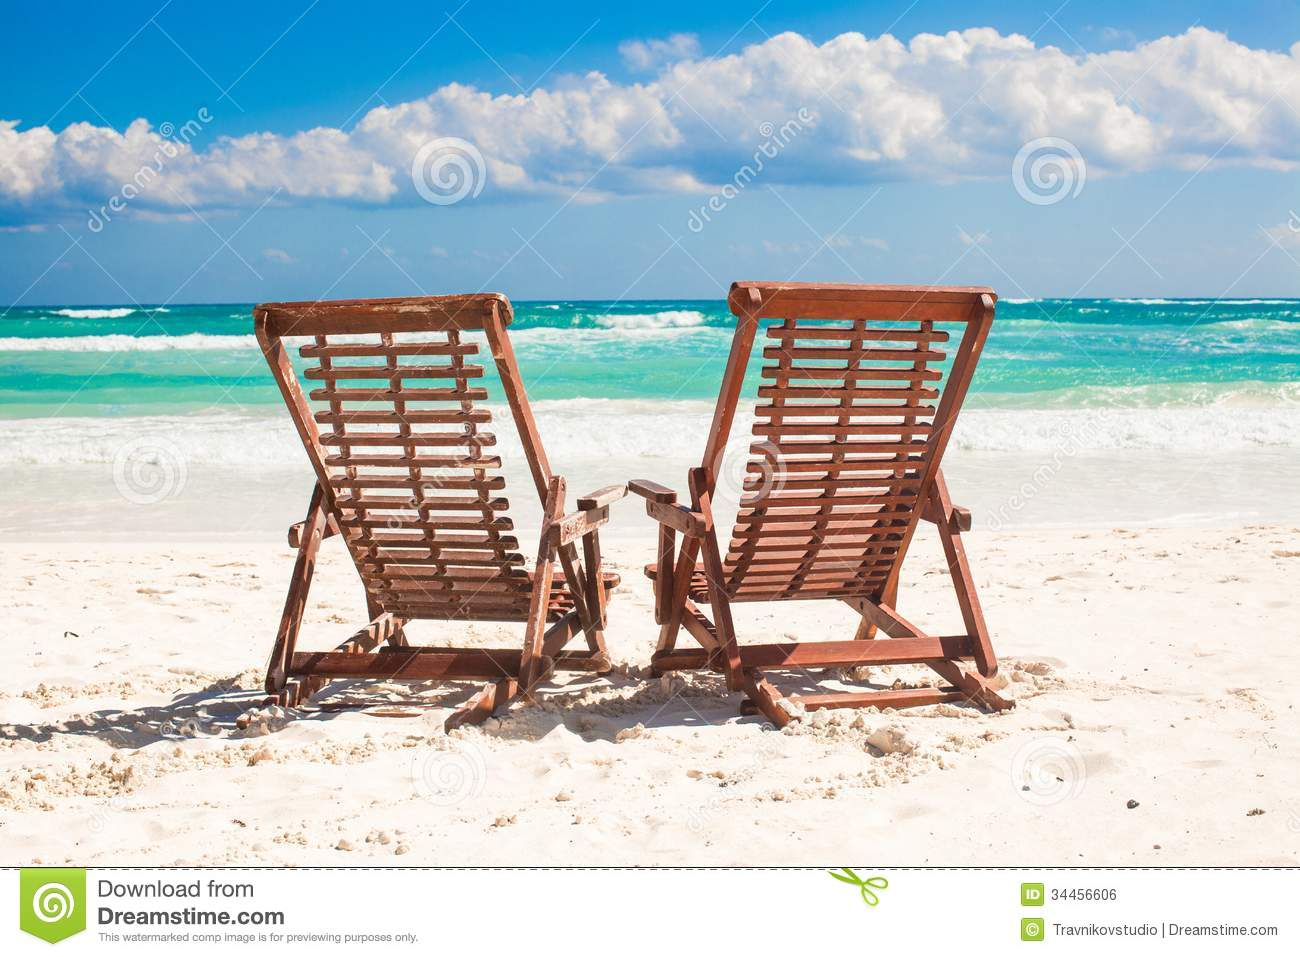 d70f30eca22 Beach Wooden Chairs For Vacations And Relax On Stock Photo - Image ...